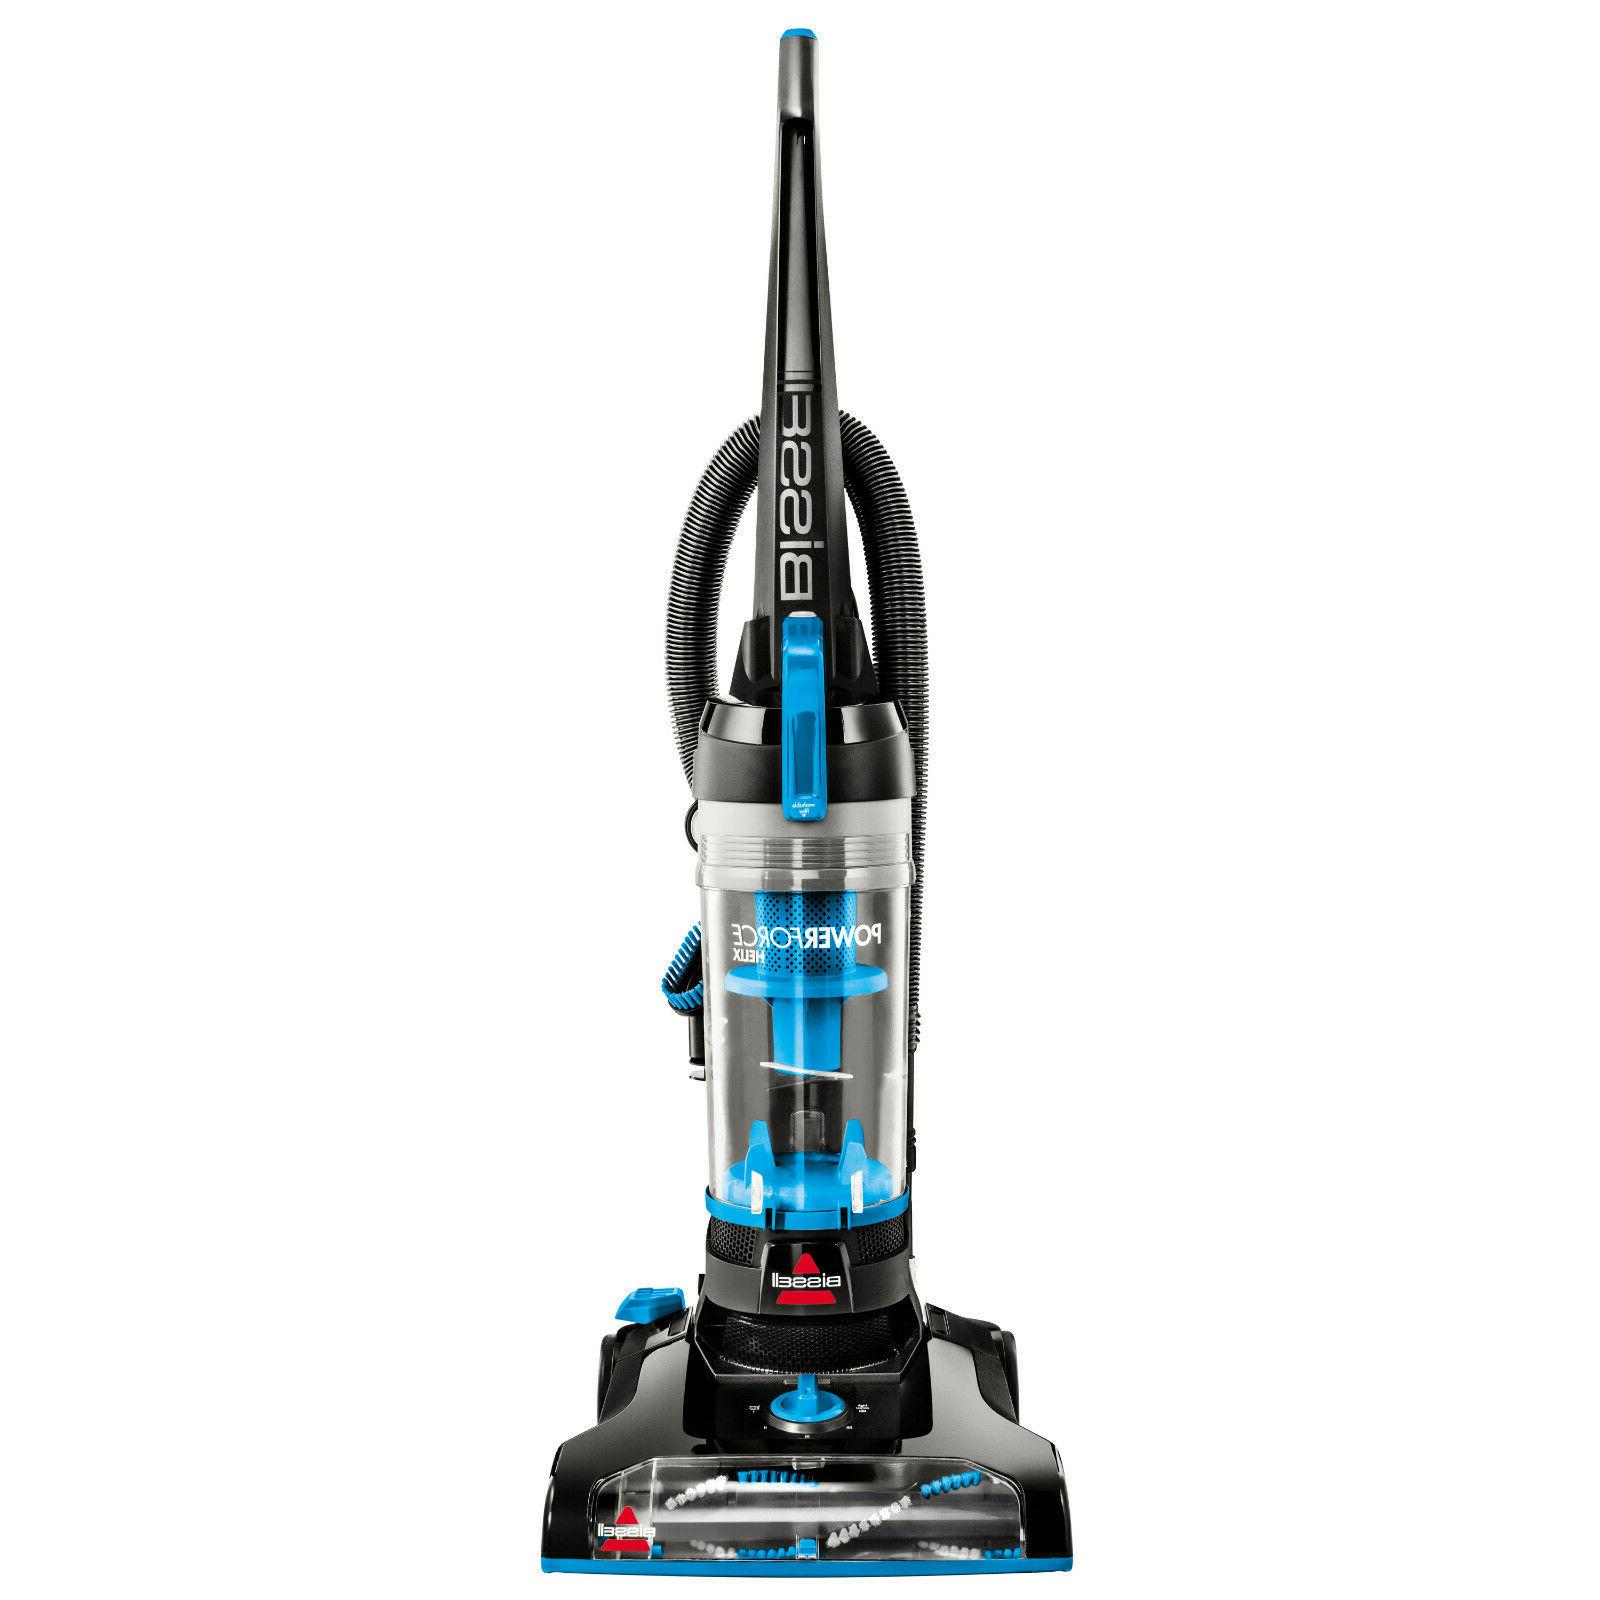 powerforce helix bagless upright corded vacuum cleaner